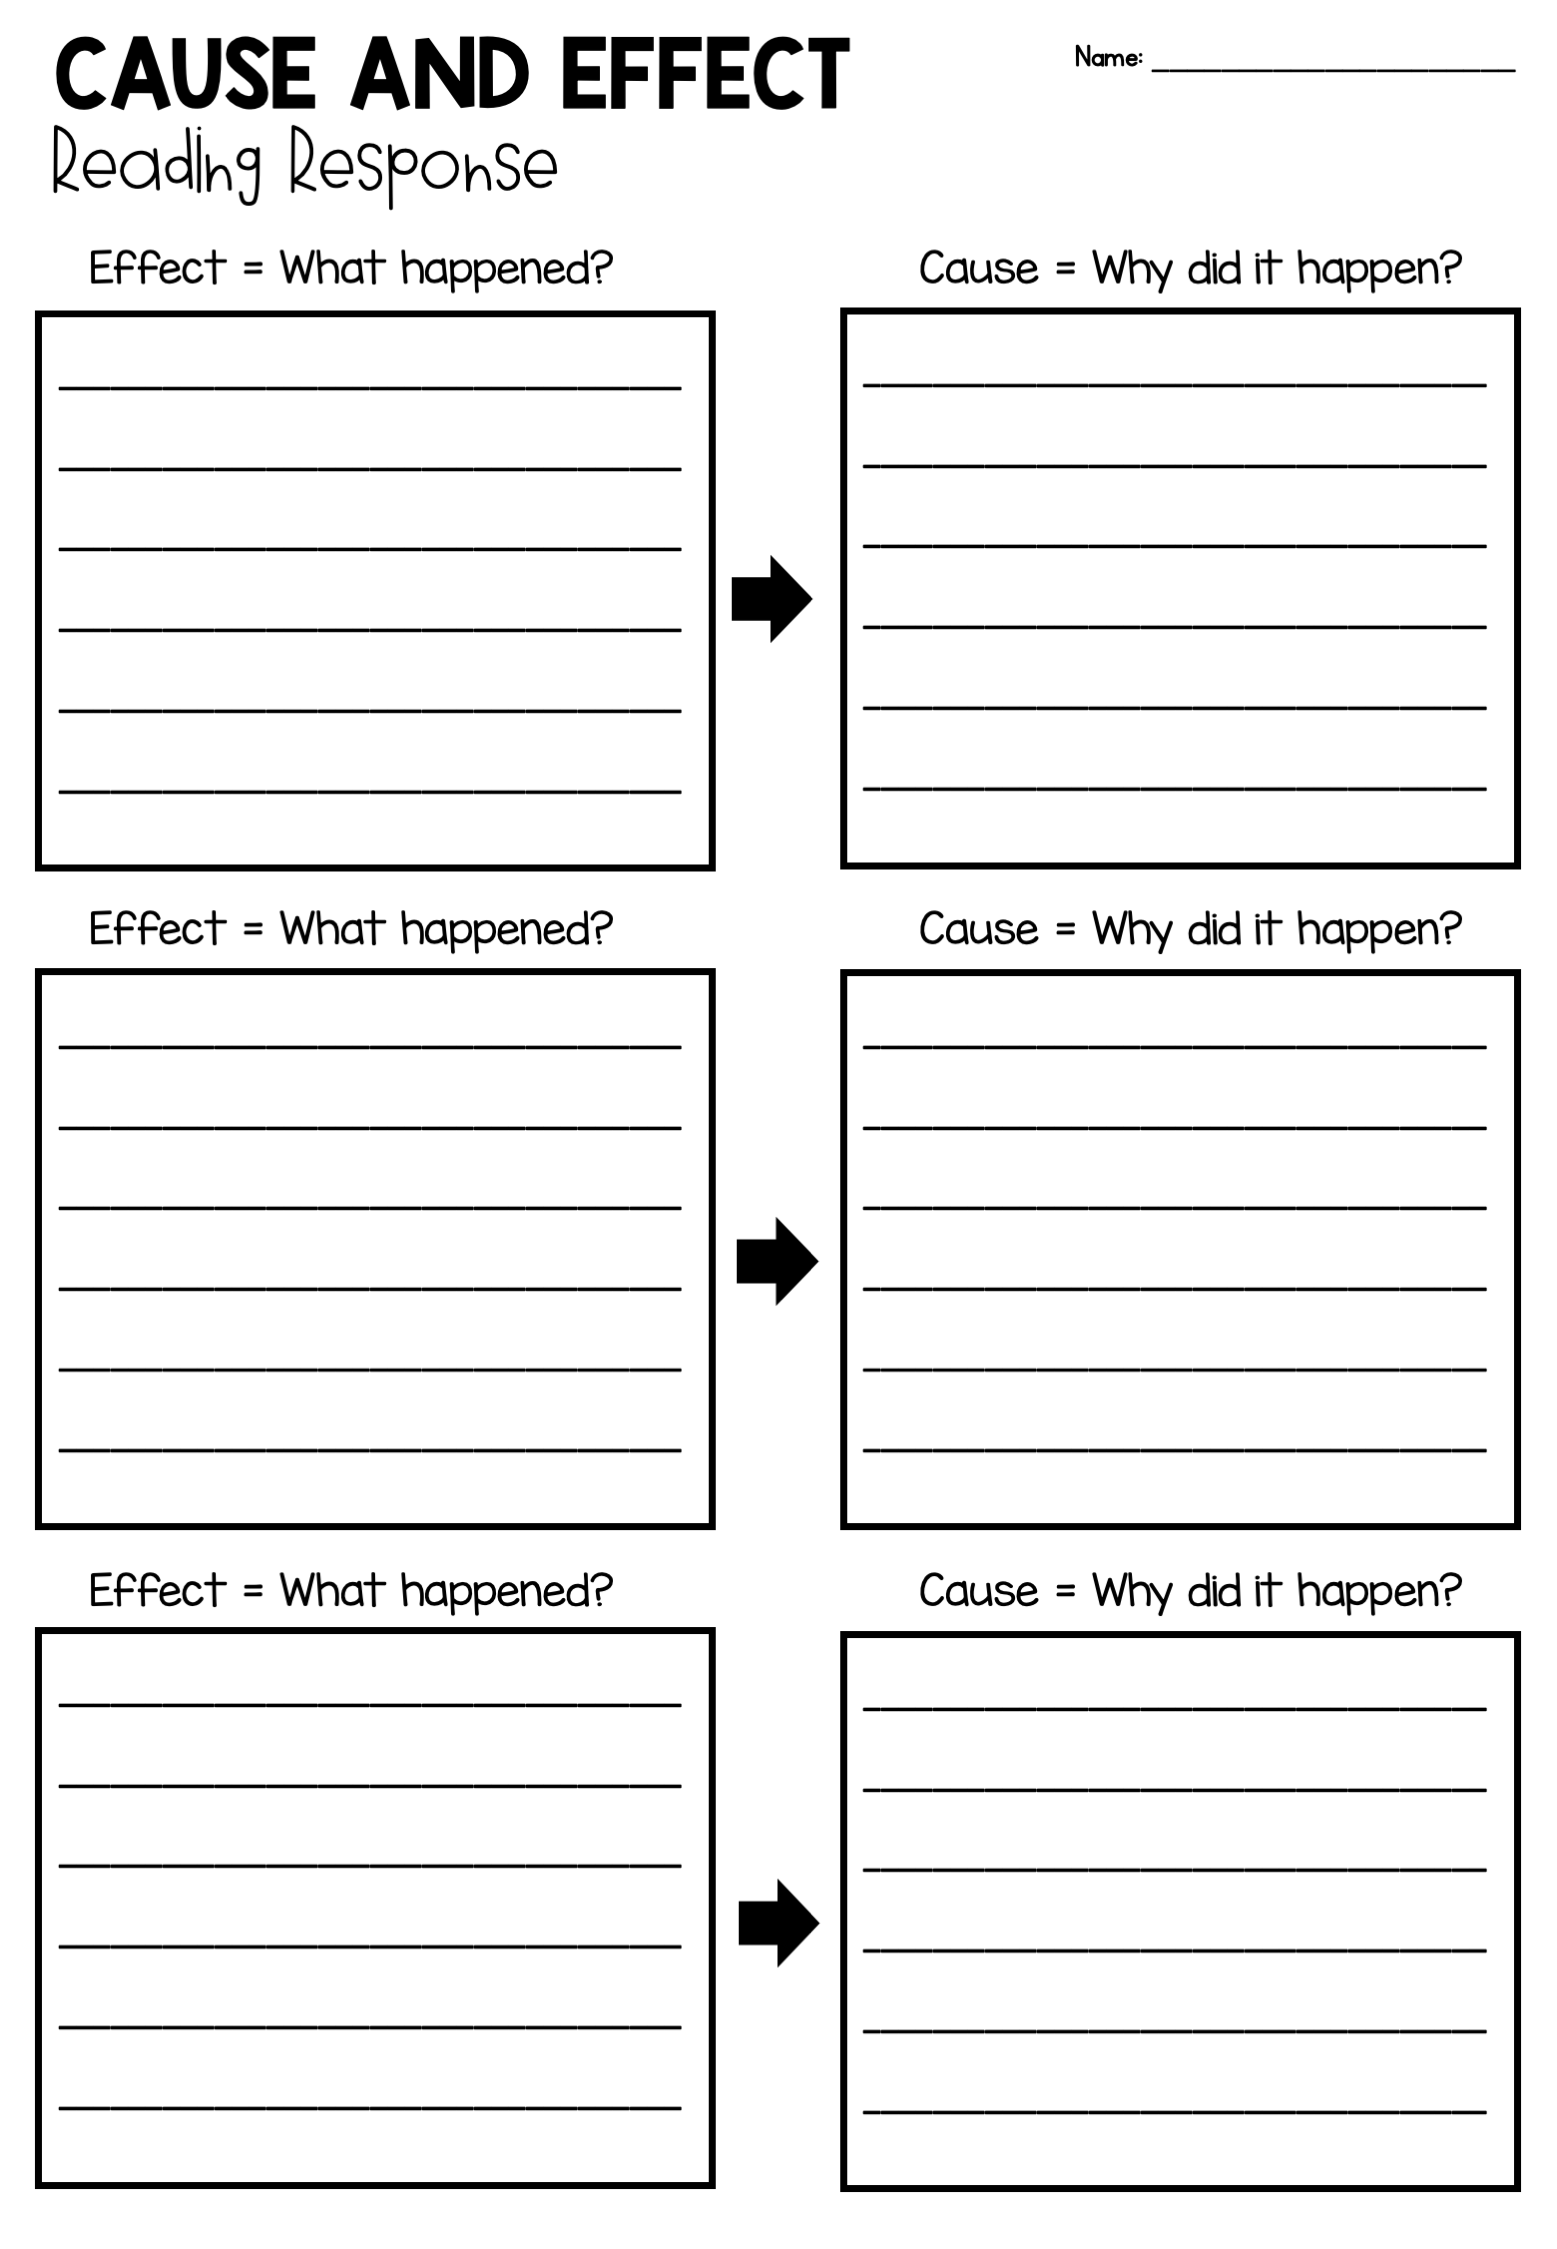 Cause And Effect Free Reading Response